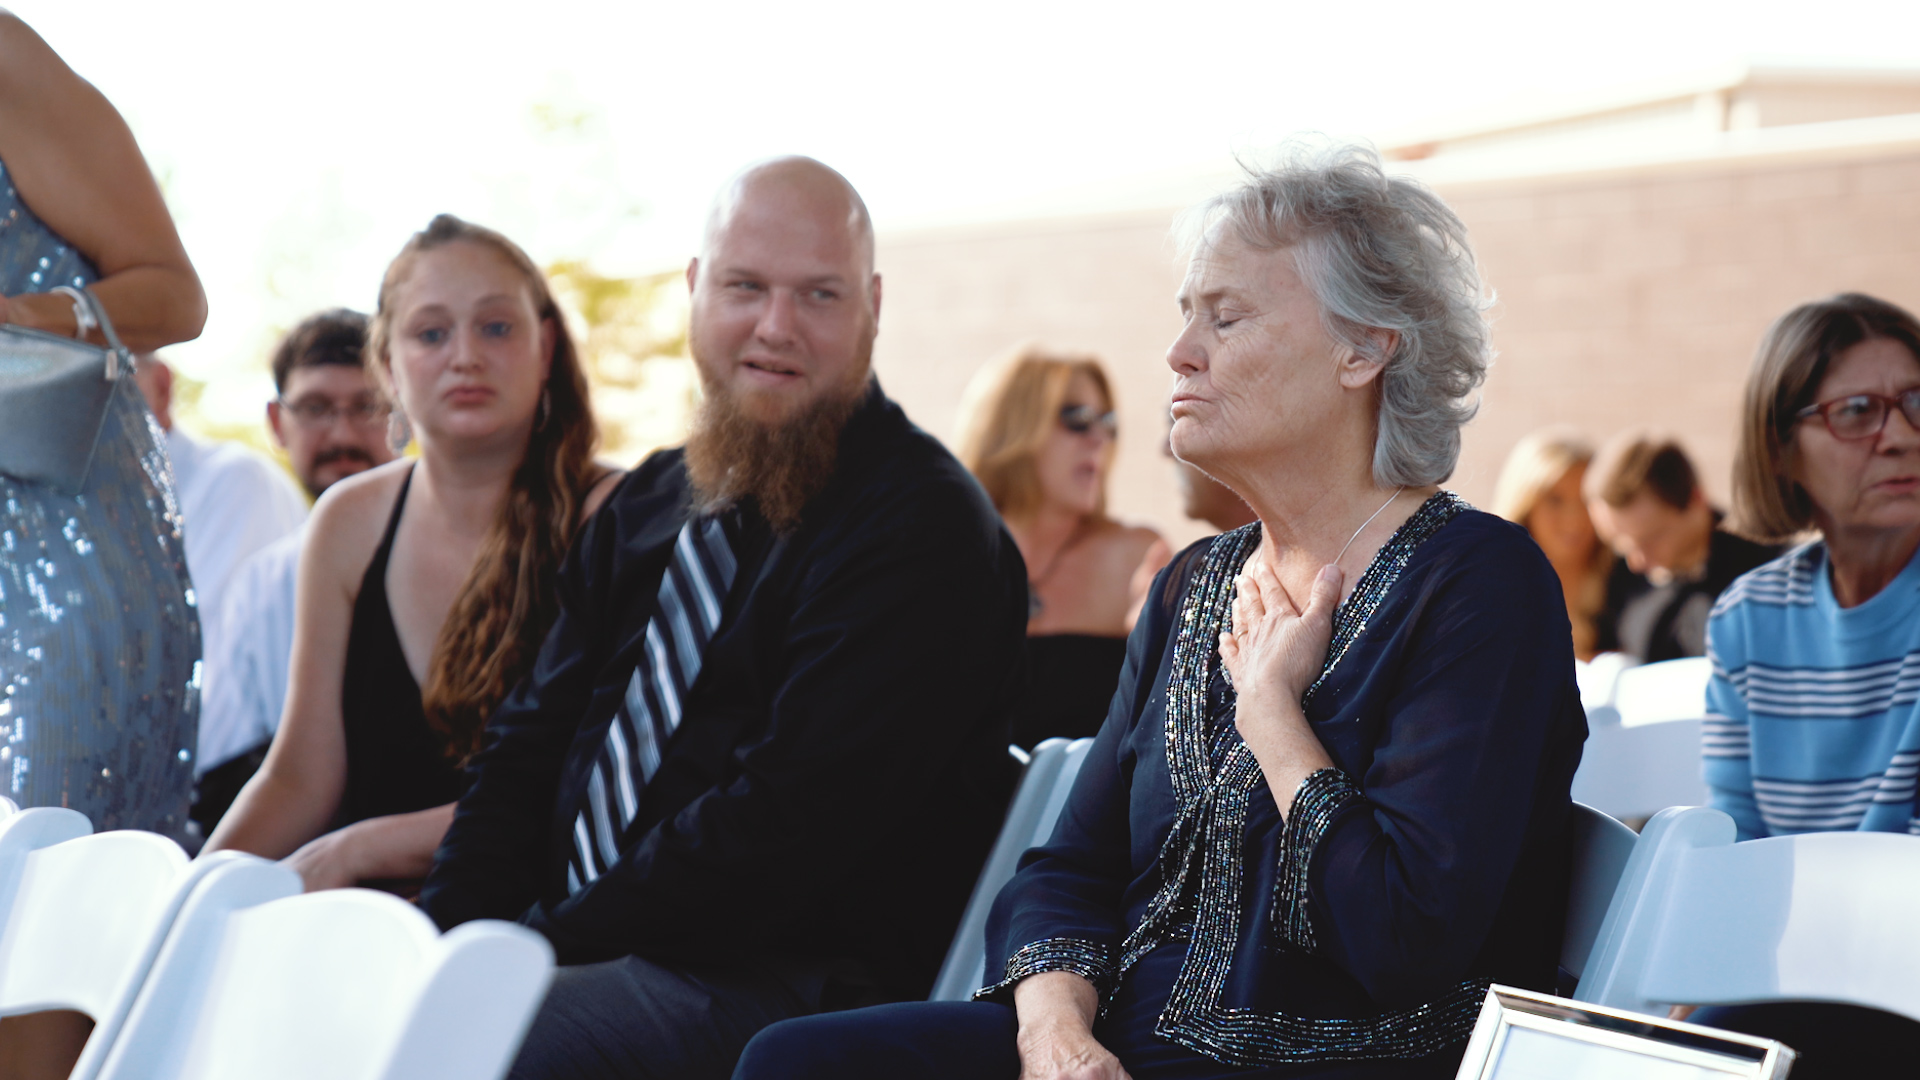 lady exhaling with emotion at wedding